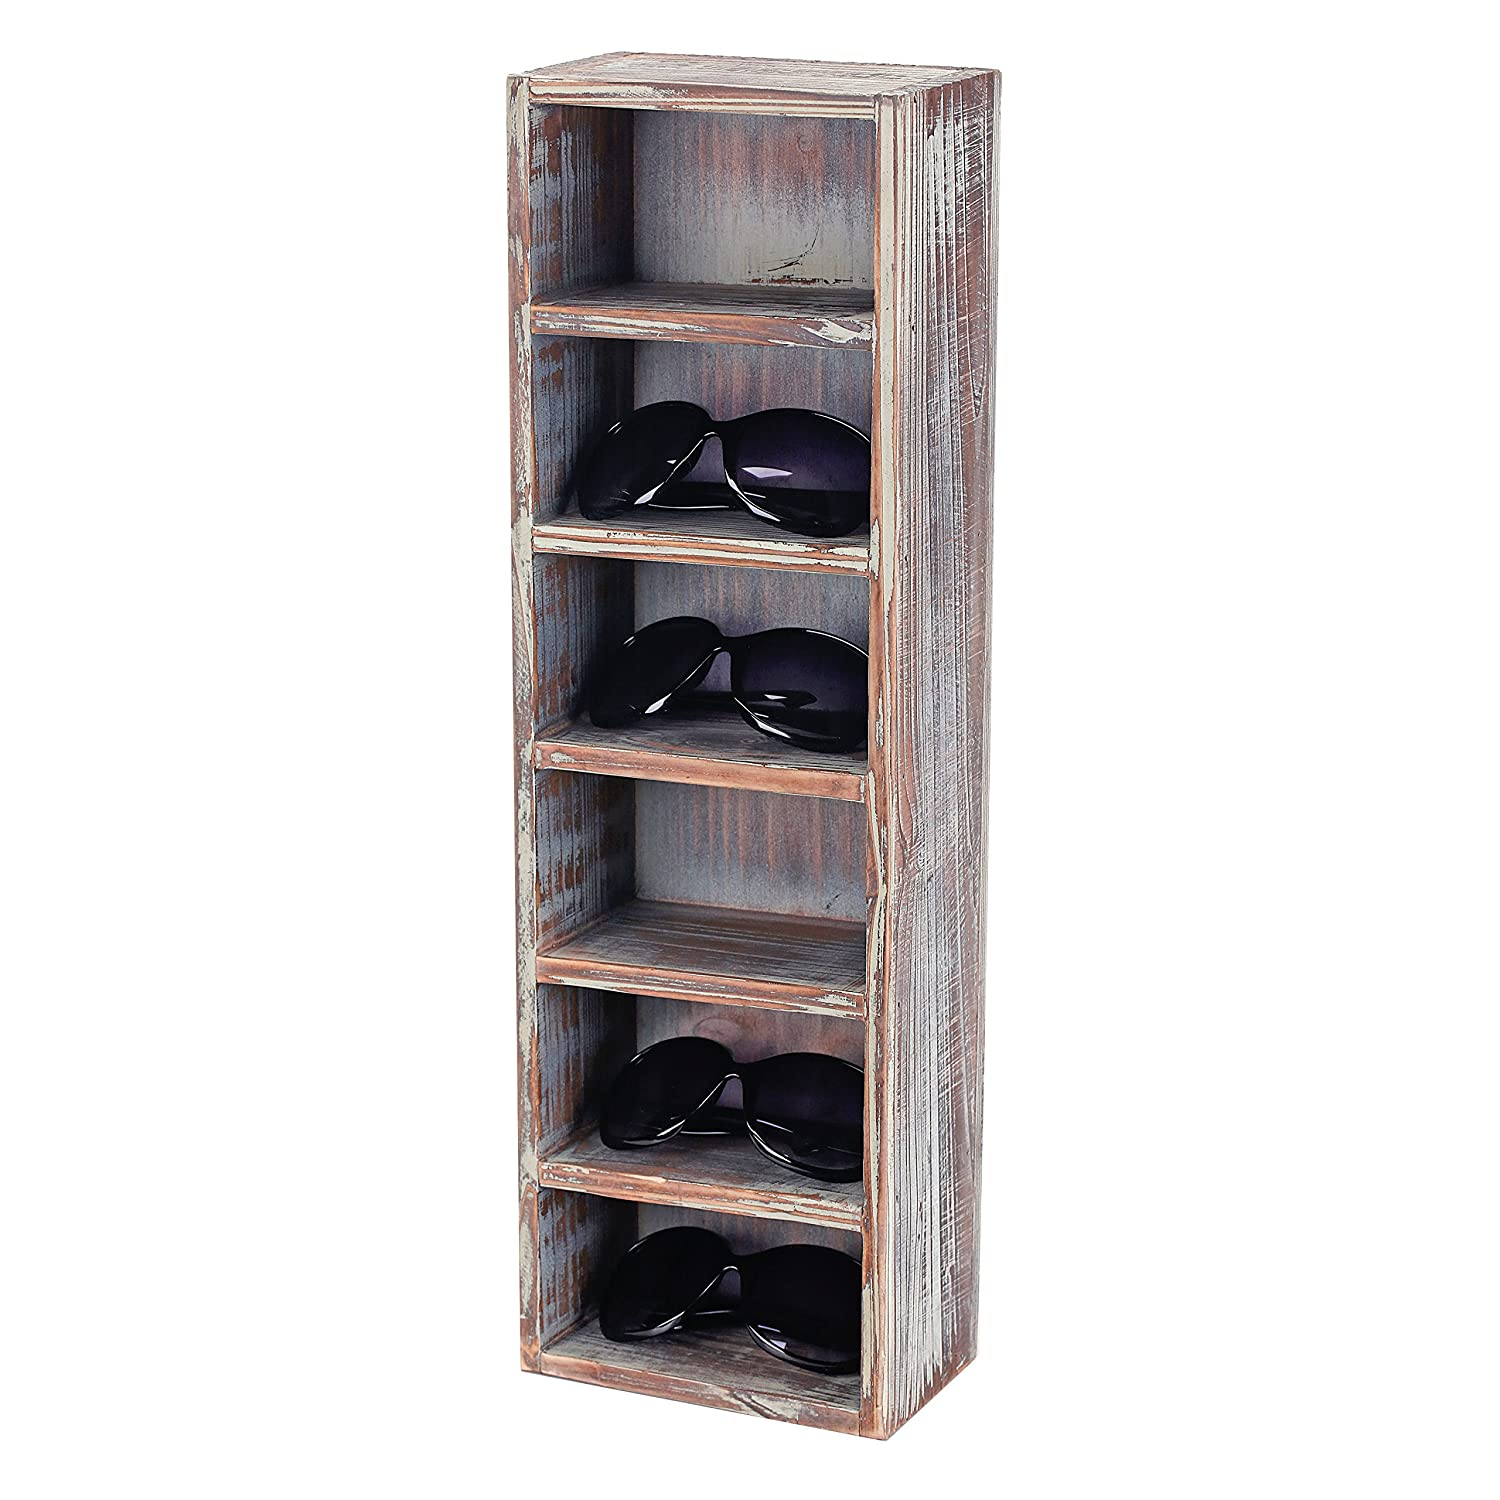 6-Slot Rustic Wooden Wall Mounted Vertical Storage Sunglasses Display Case Stand MyGift